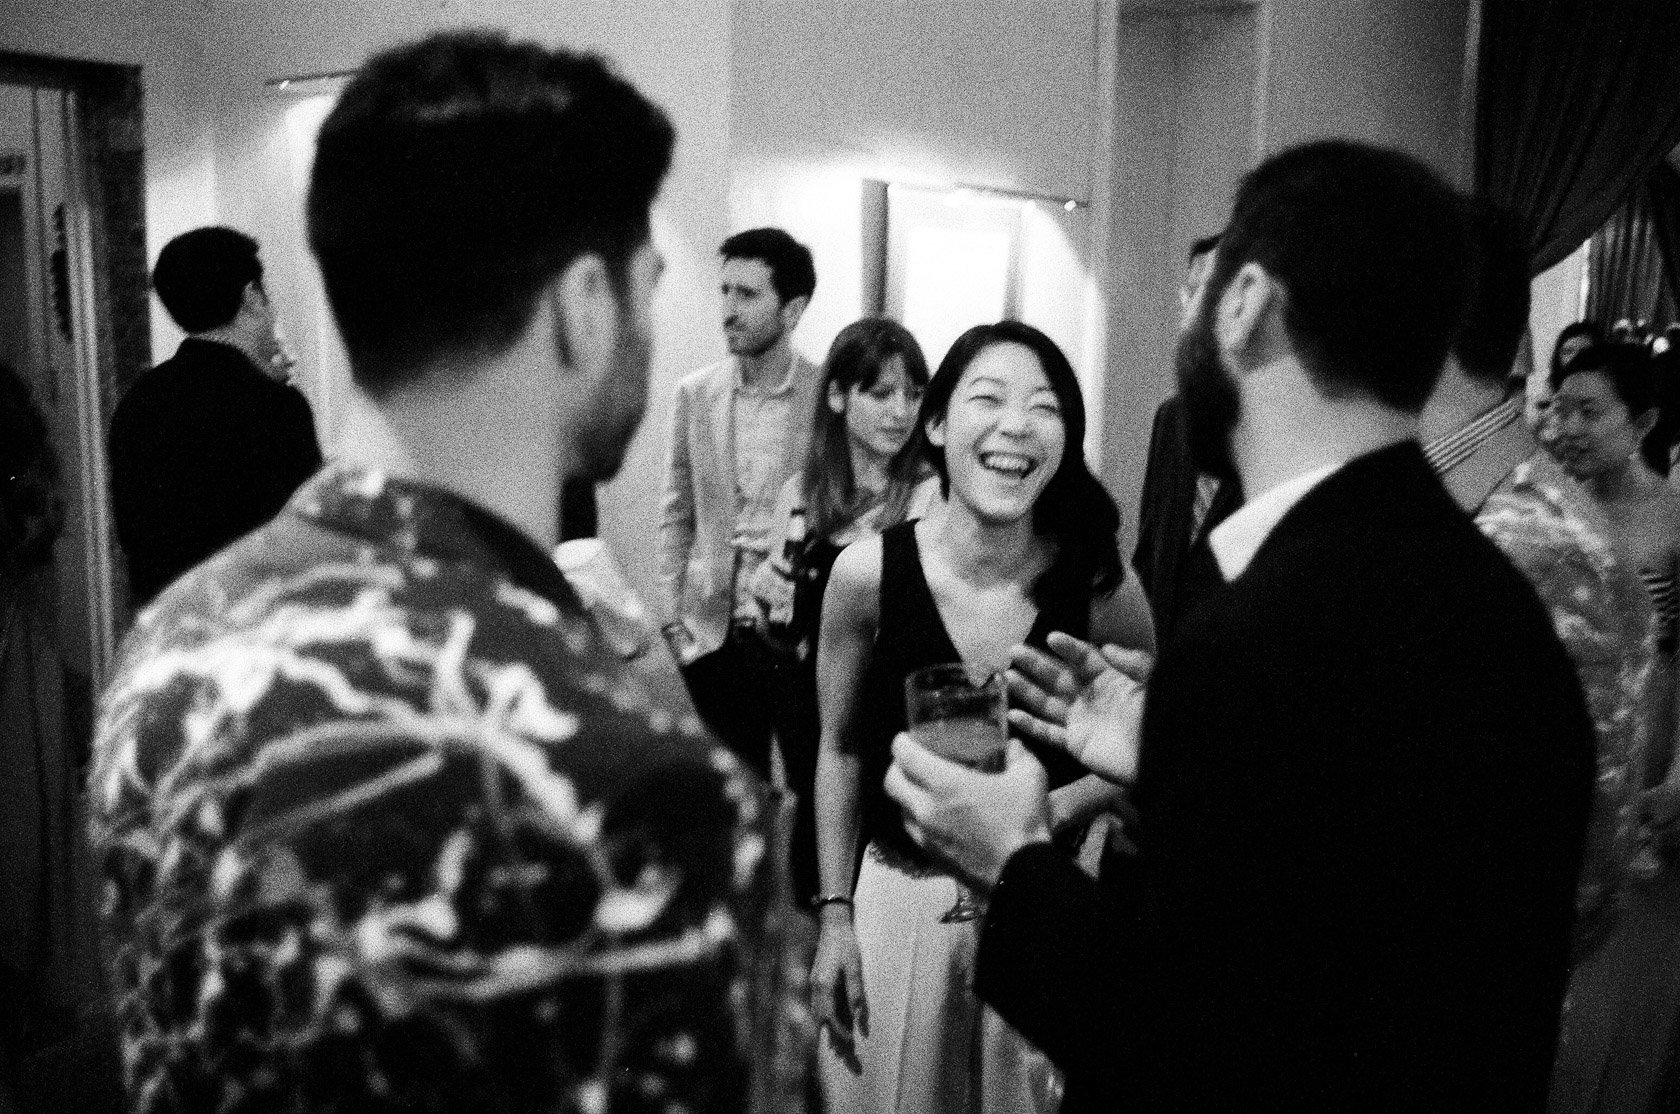 New Orleans Wedding on Film at CAC - 01